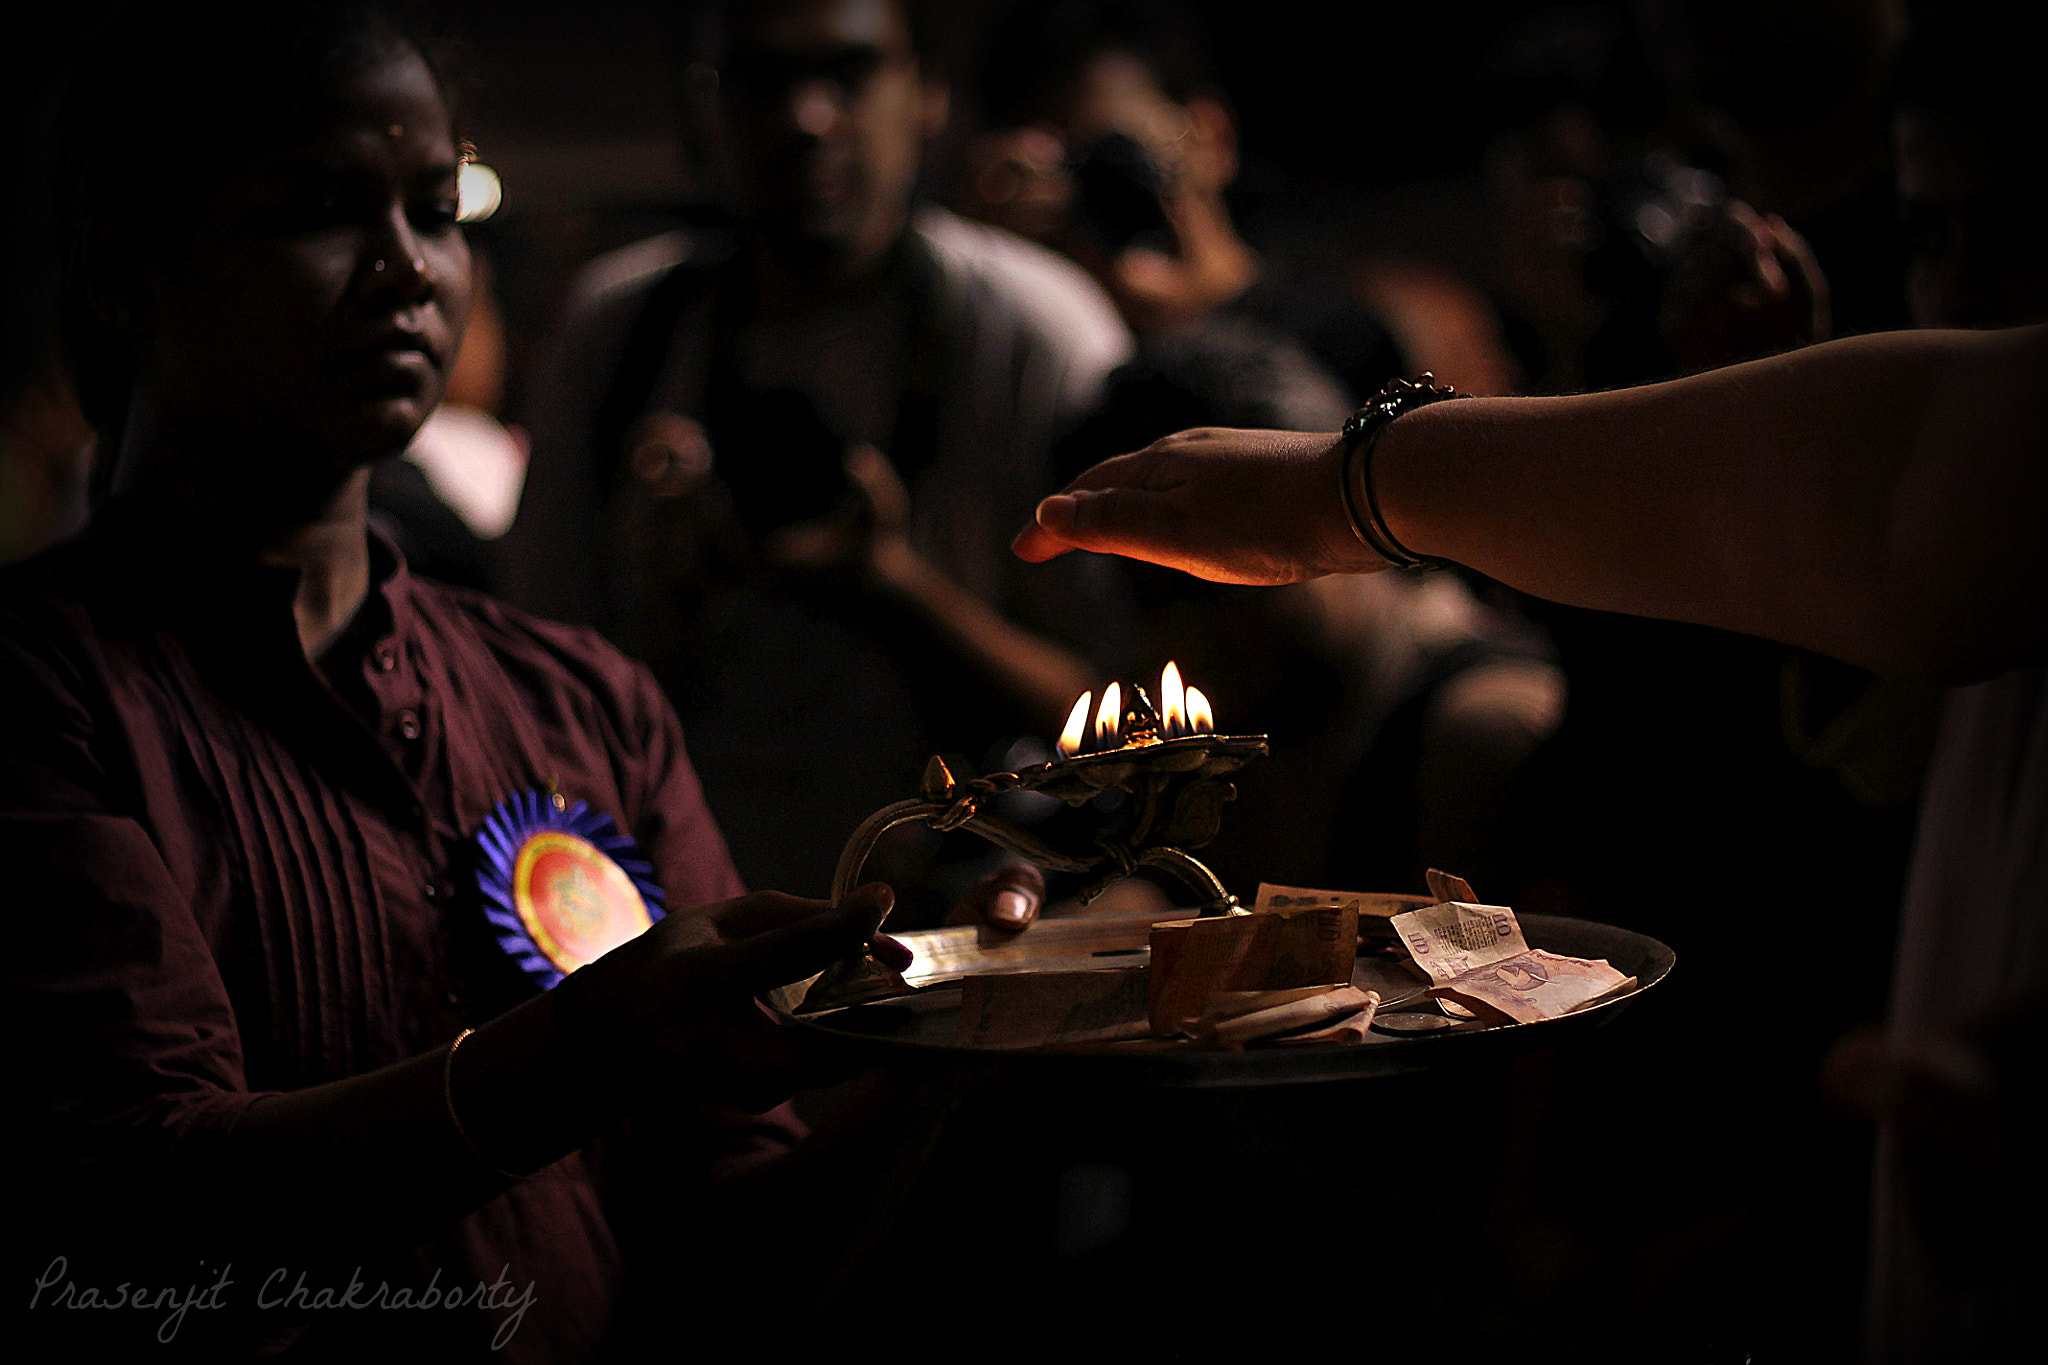 Photograph Sharing The Blessings by Prasenjit Chakraborty on 500px